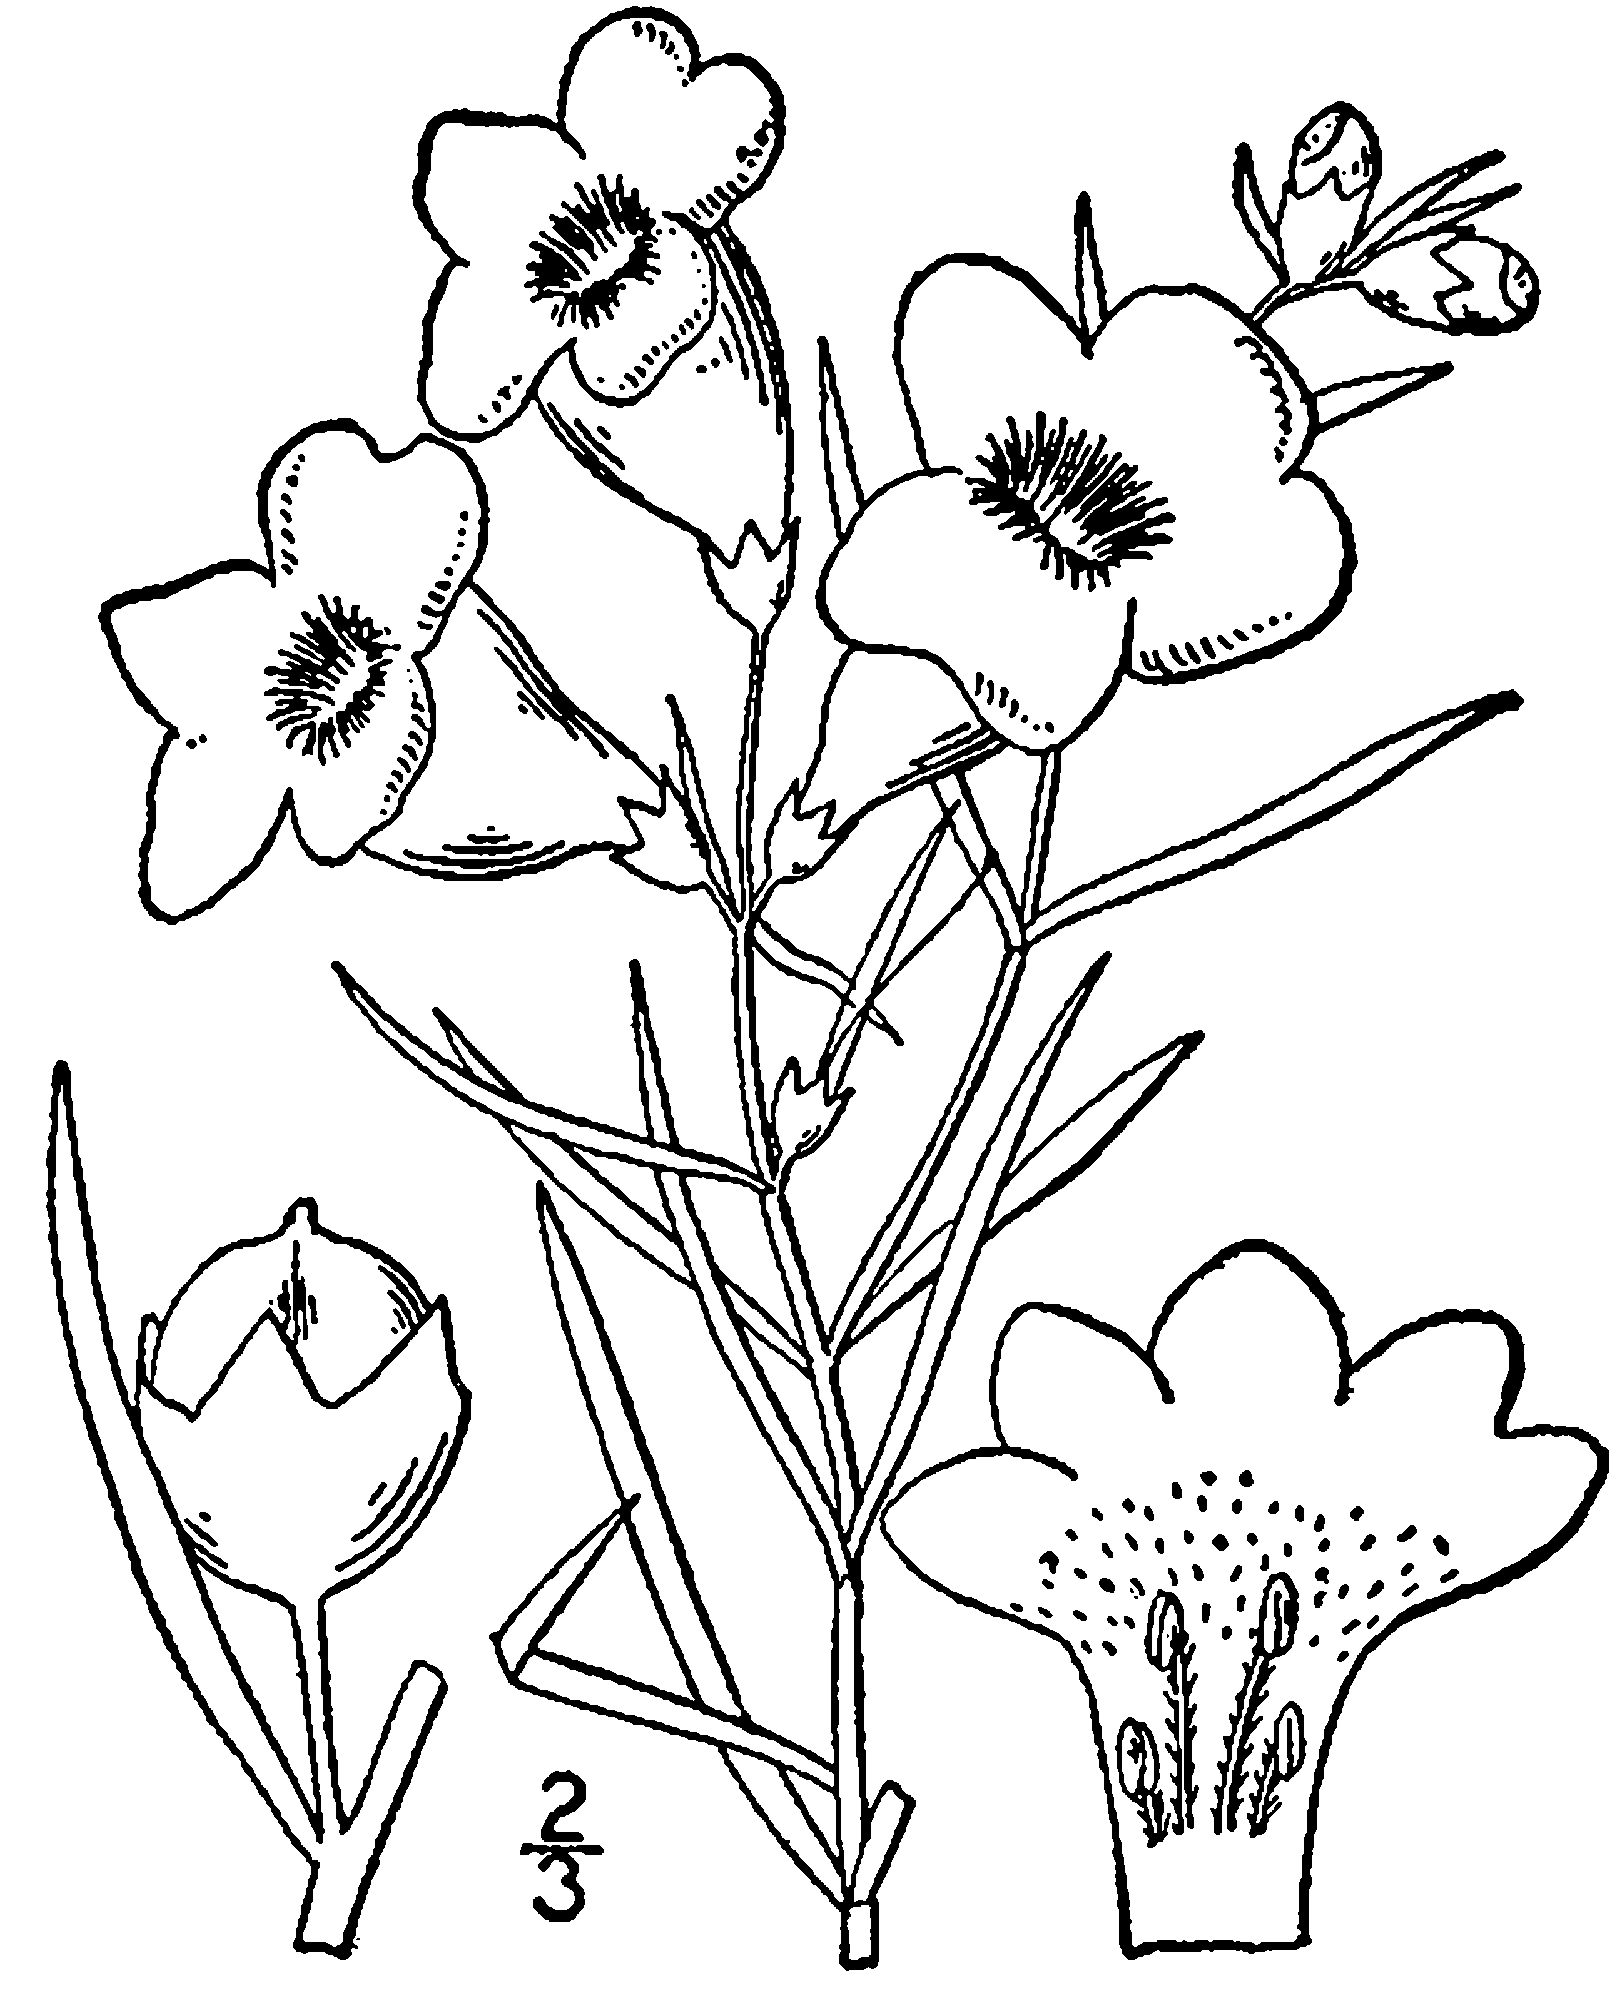 Lead drawing foxglove flower. File agalinis purpurea png